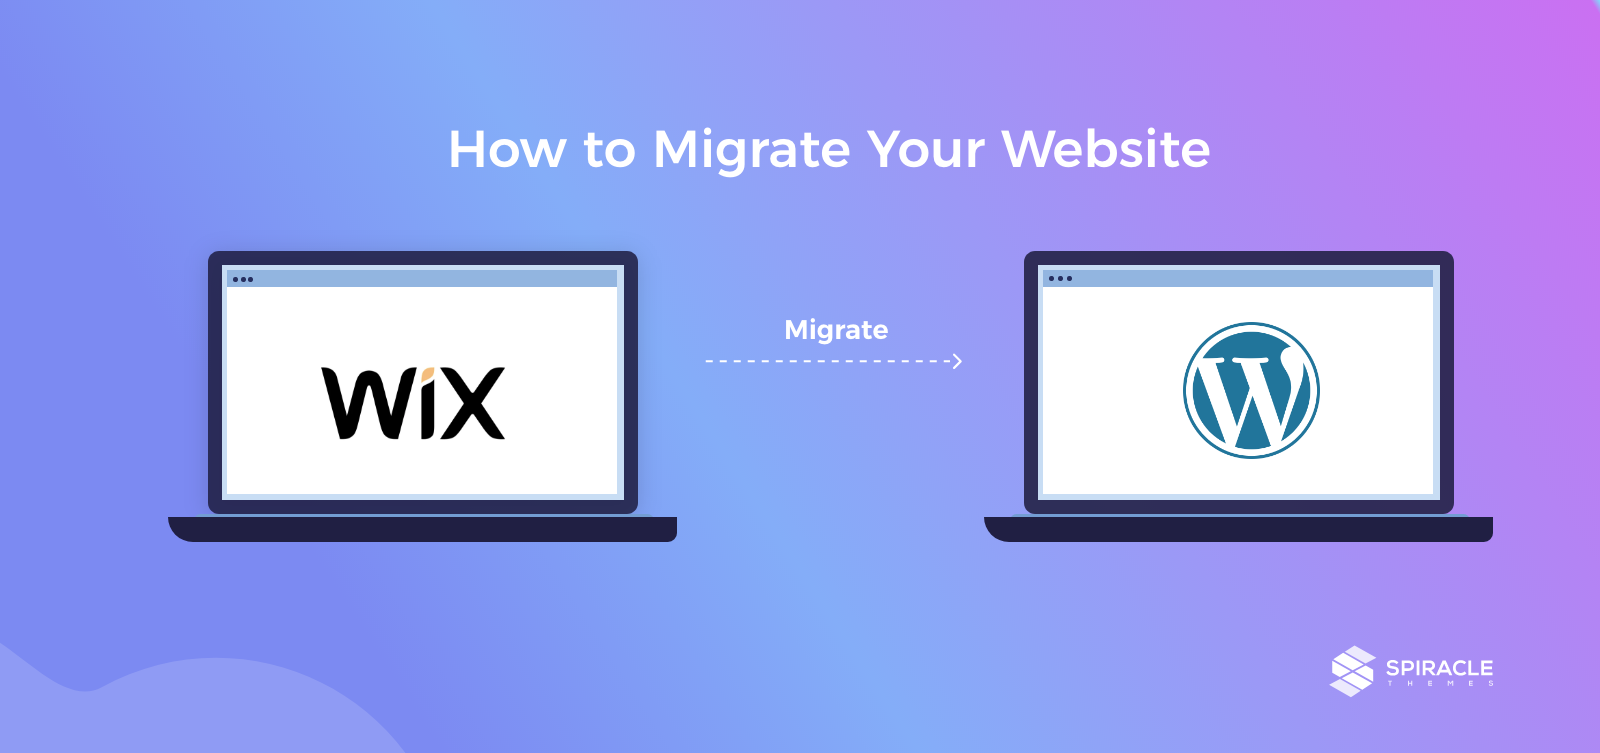 How to Migrate Your Website from Wix to WordPress